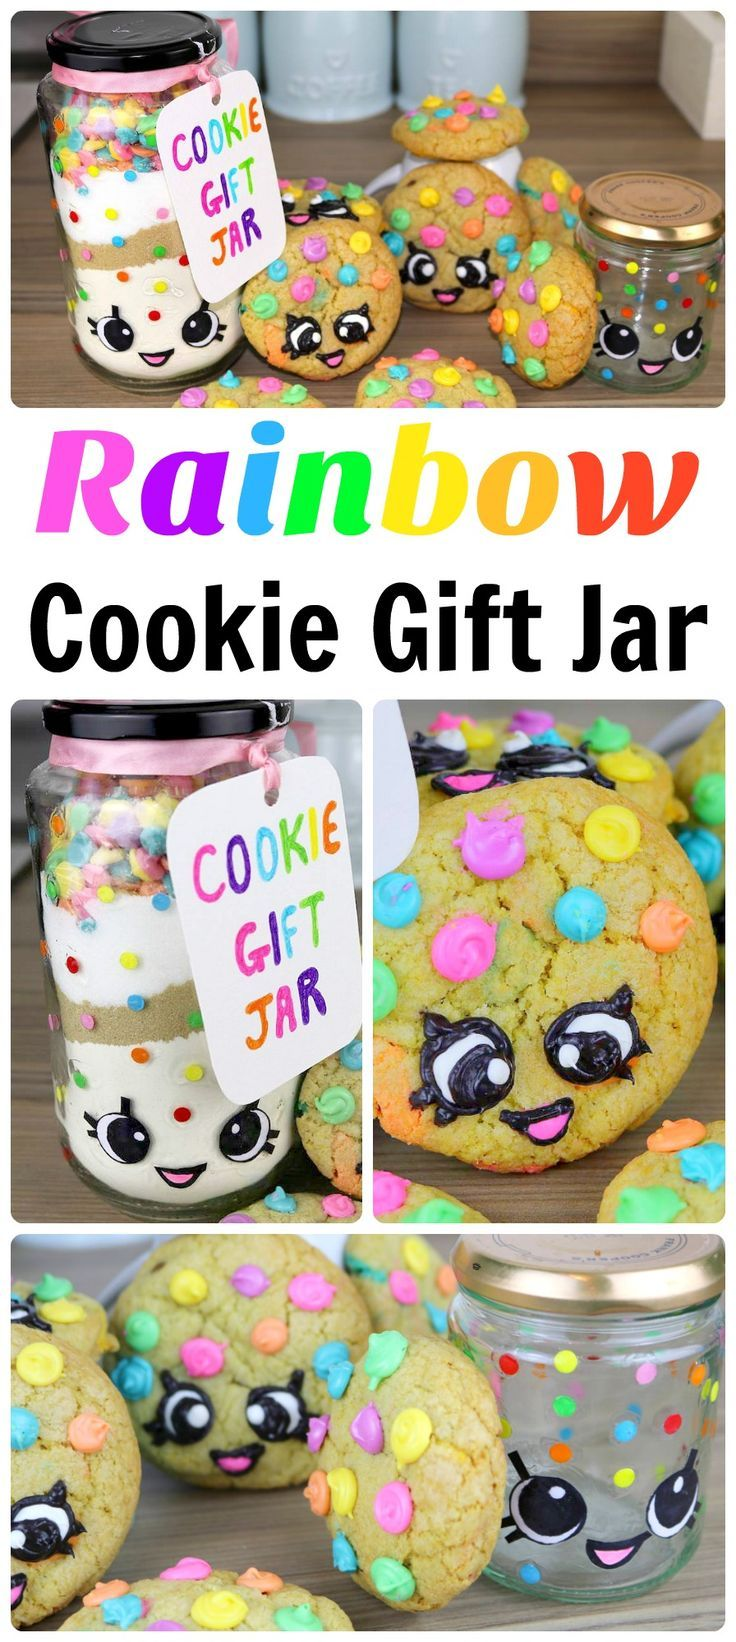 Rainbow Cookie Gift Jar DIY - this is Kawaii and Shopkins Kooky inspired - make an adorable Kooky Gift Jar - and then fill it with Rainbow Cookie ingredients. The jar can also be used to store your Shopkins or other bits and pieces. A great mason jar DIY. Adorable.